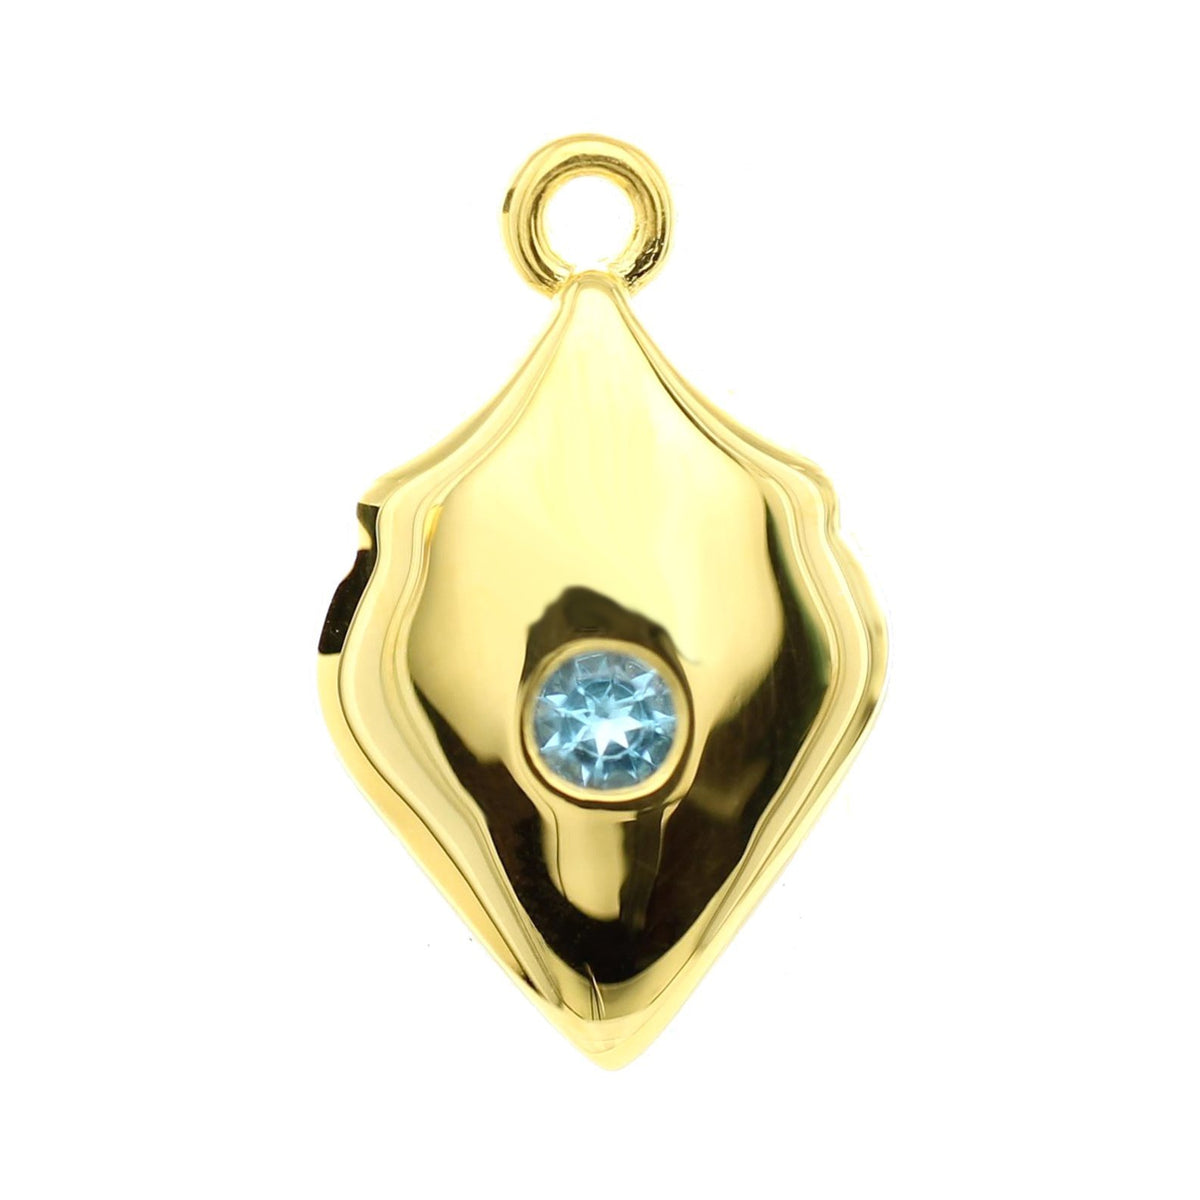 LEGACY DECEMBER BIRTHSTONE SHIELD ICON - BLUE TOPAZ & GOLD - SO PRETTY CARA COTTER